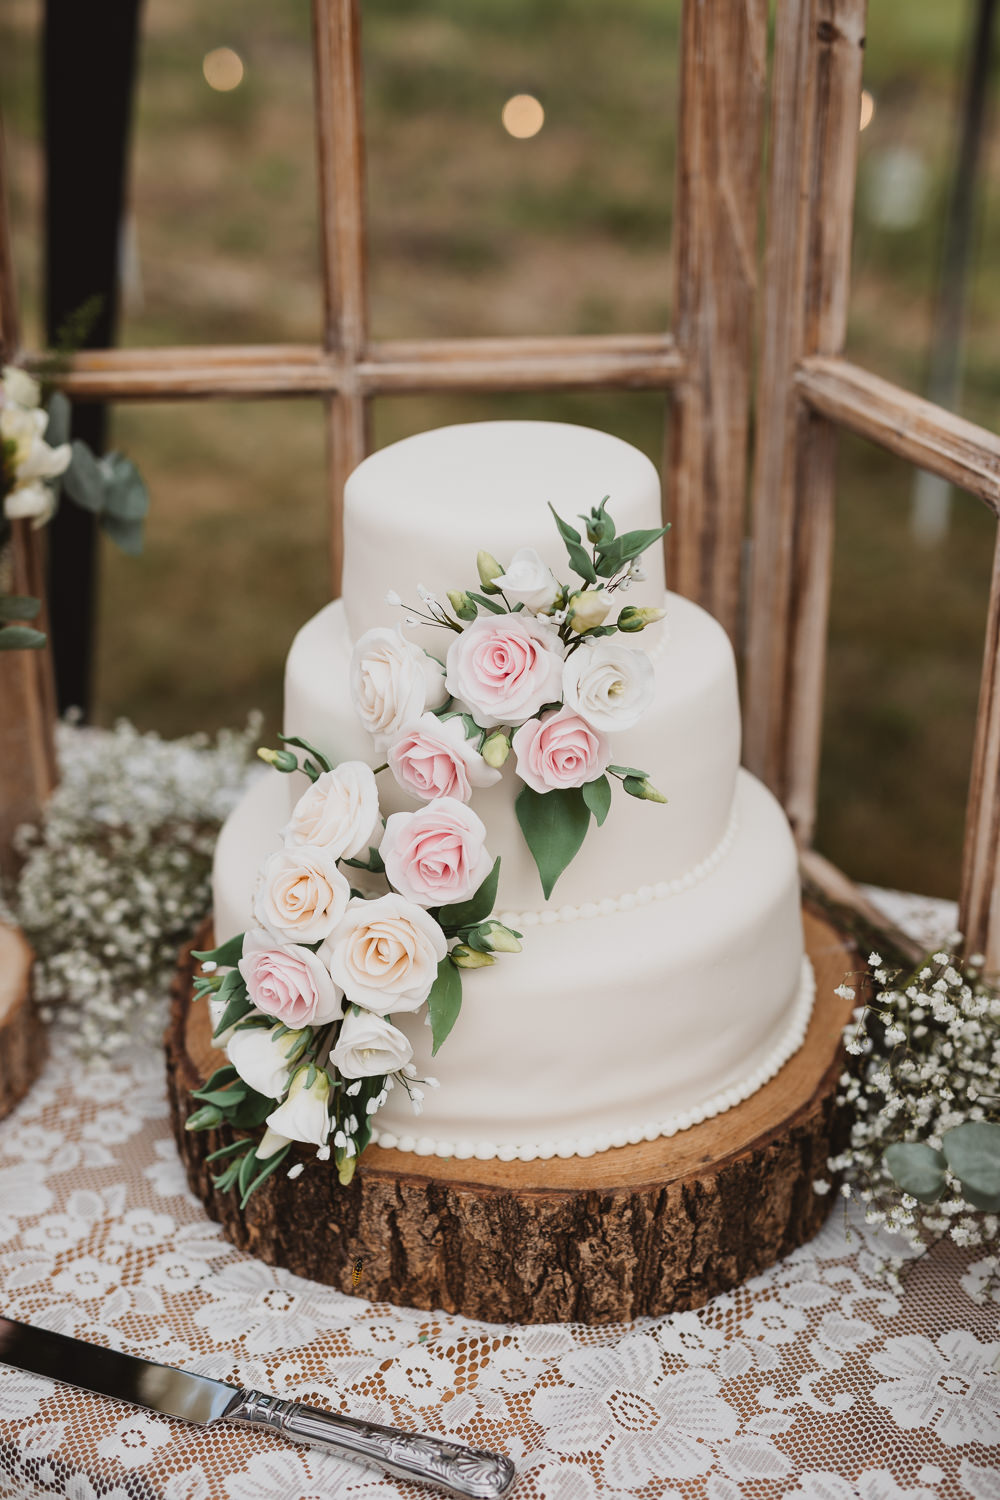 Iced Cake Sugar Flowers Log Slice Stand Clear Marquee Wedding Sarah Brookes Photography